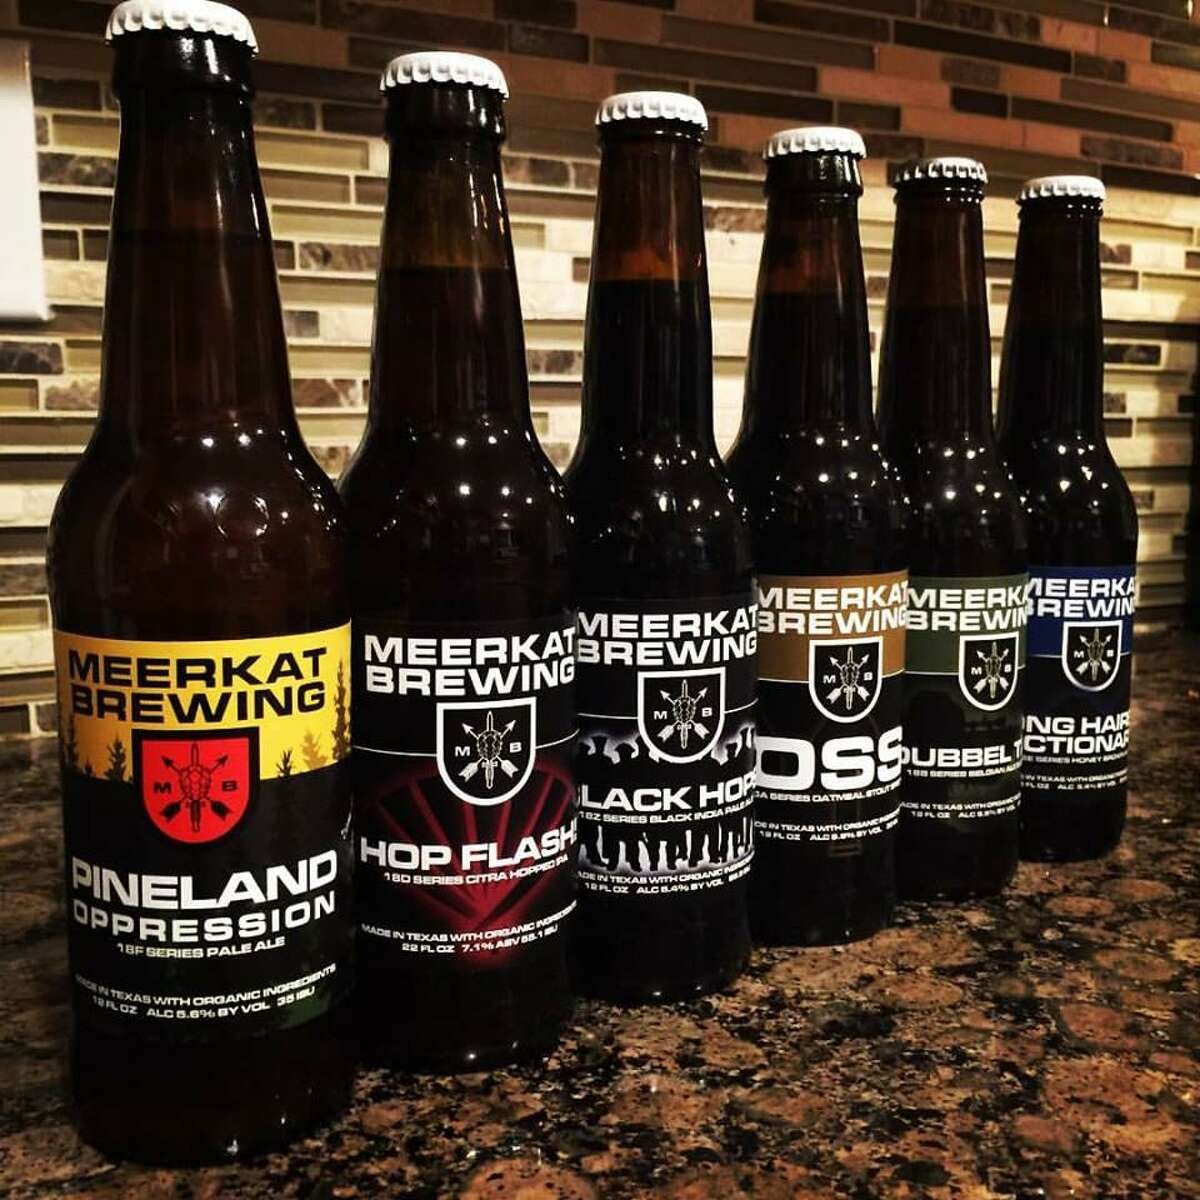 Longtab Brewing owner Dave Holland hopes to open in the Leon Valley area before the end of the year.